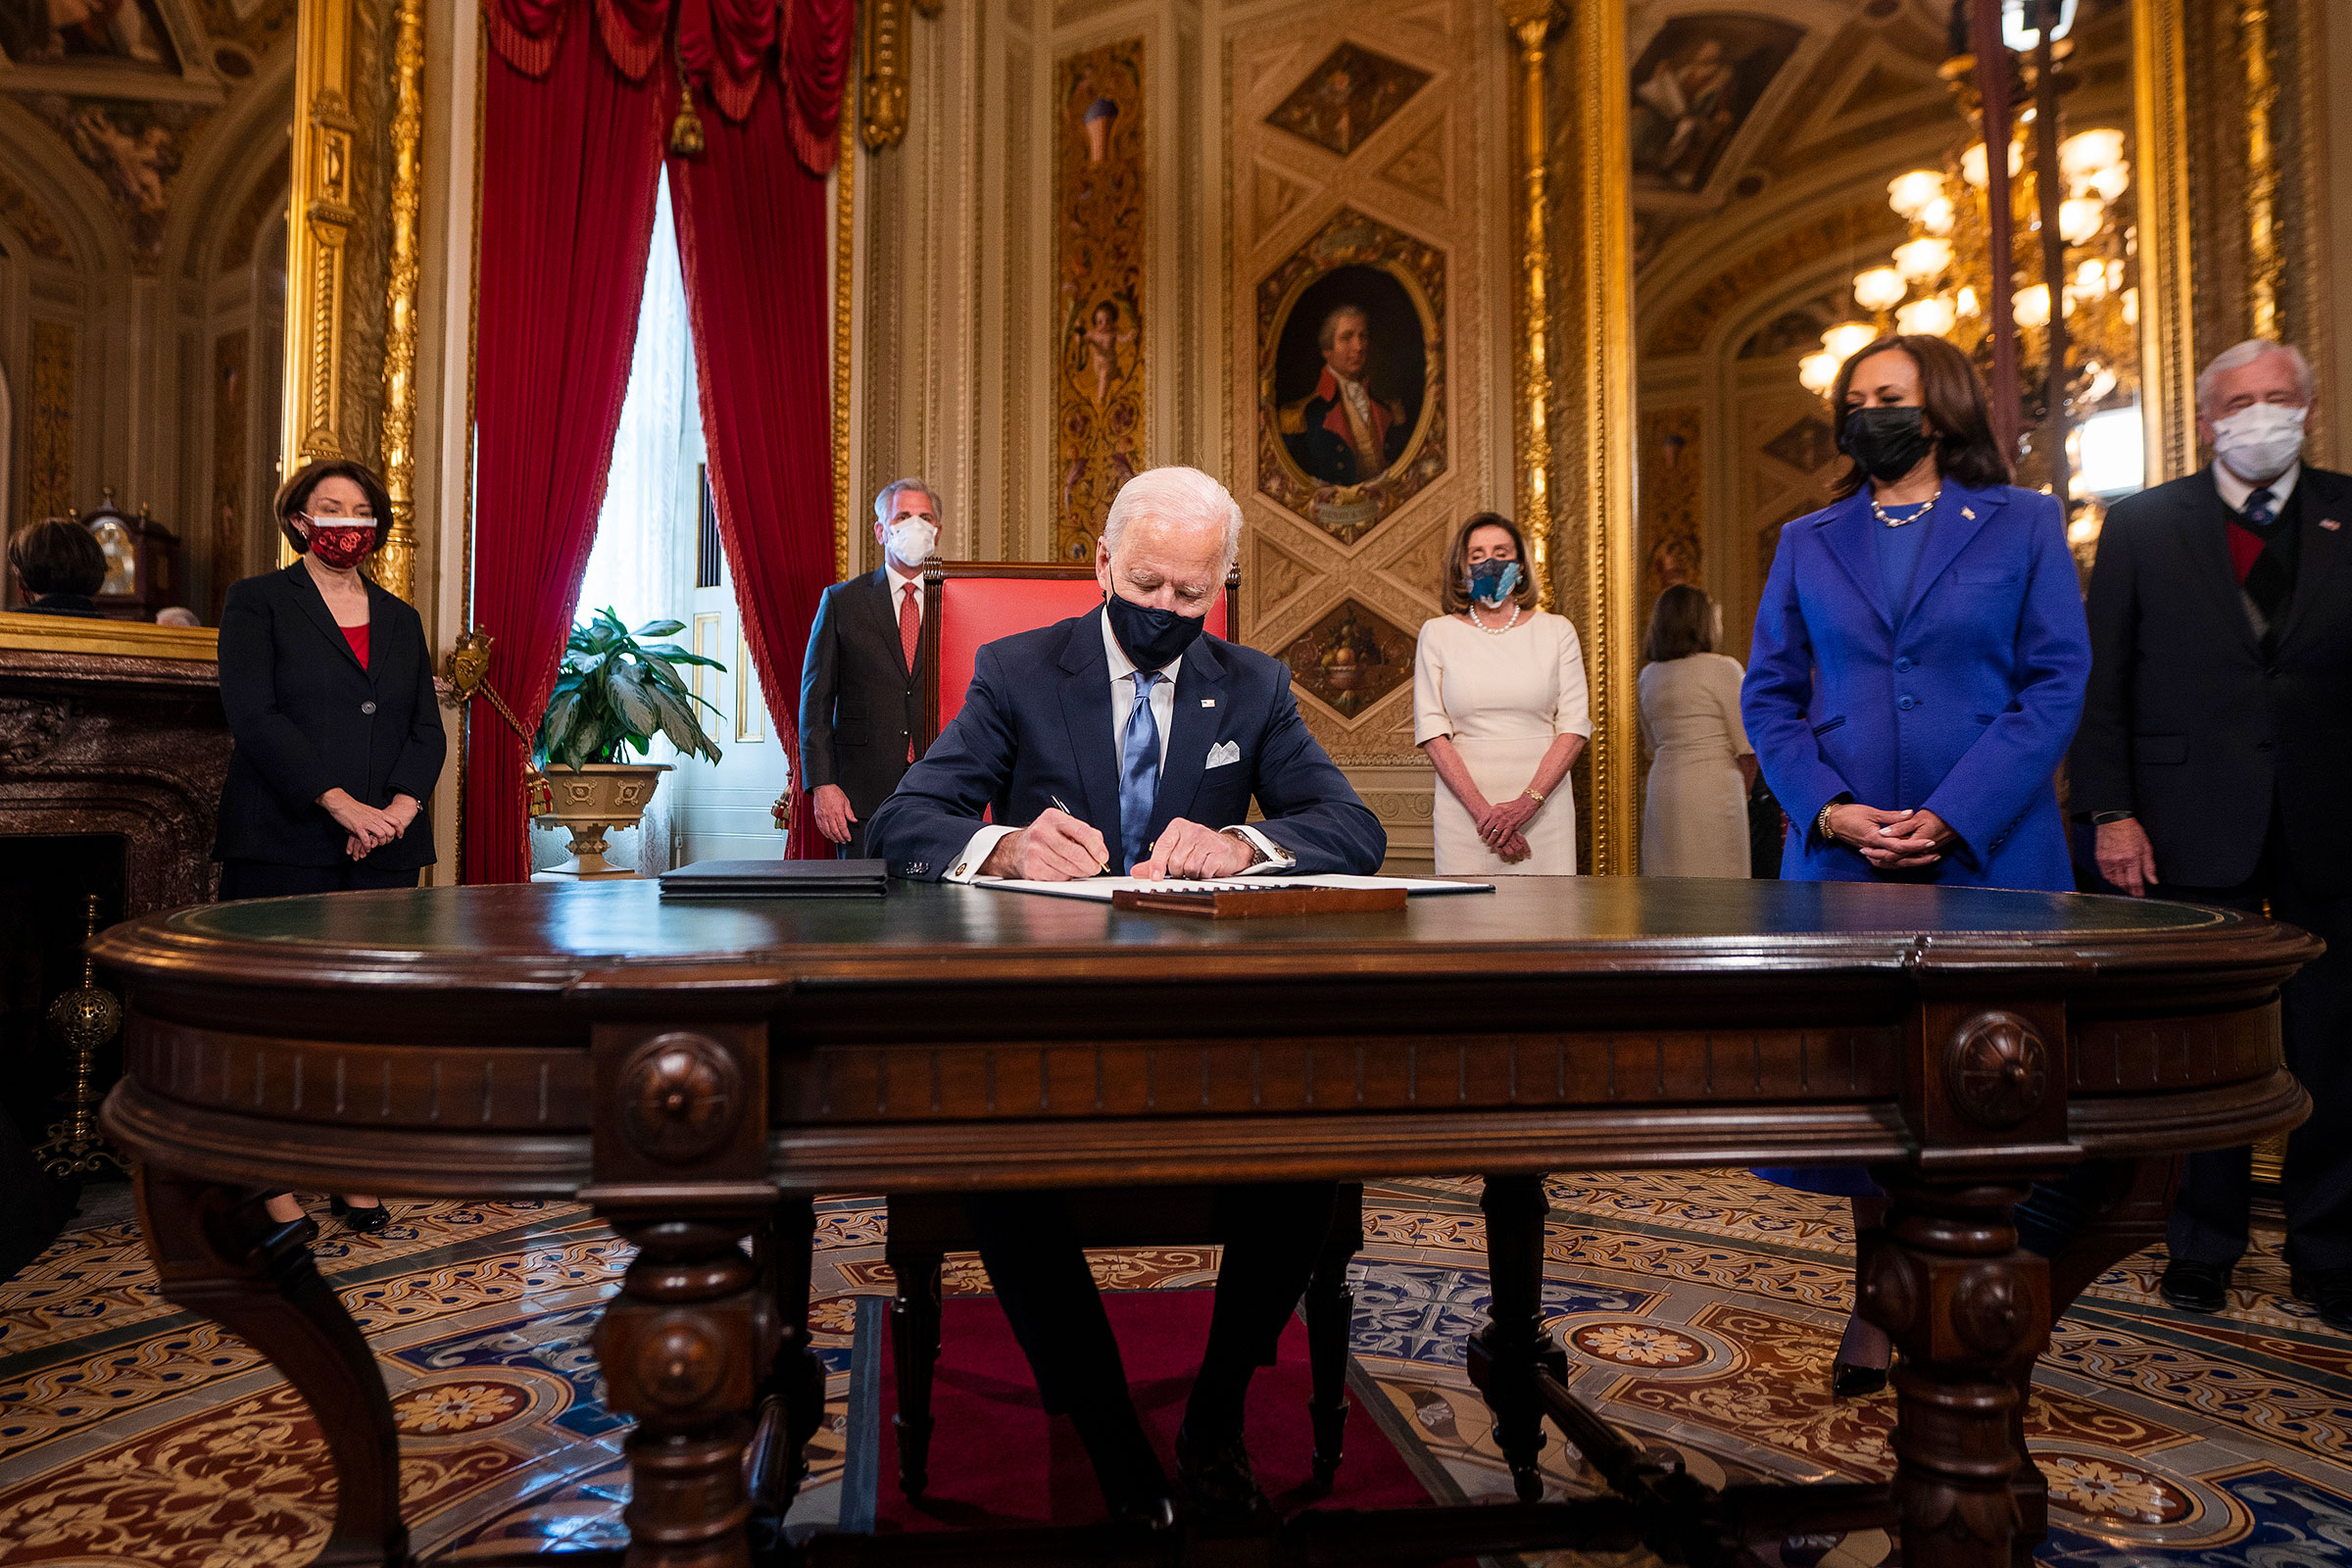 Biden signs his first official documents as President at the U.S. Capitol